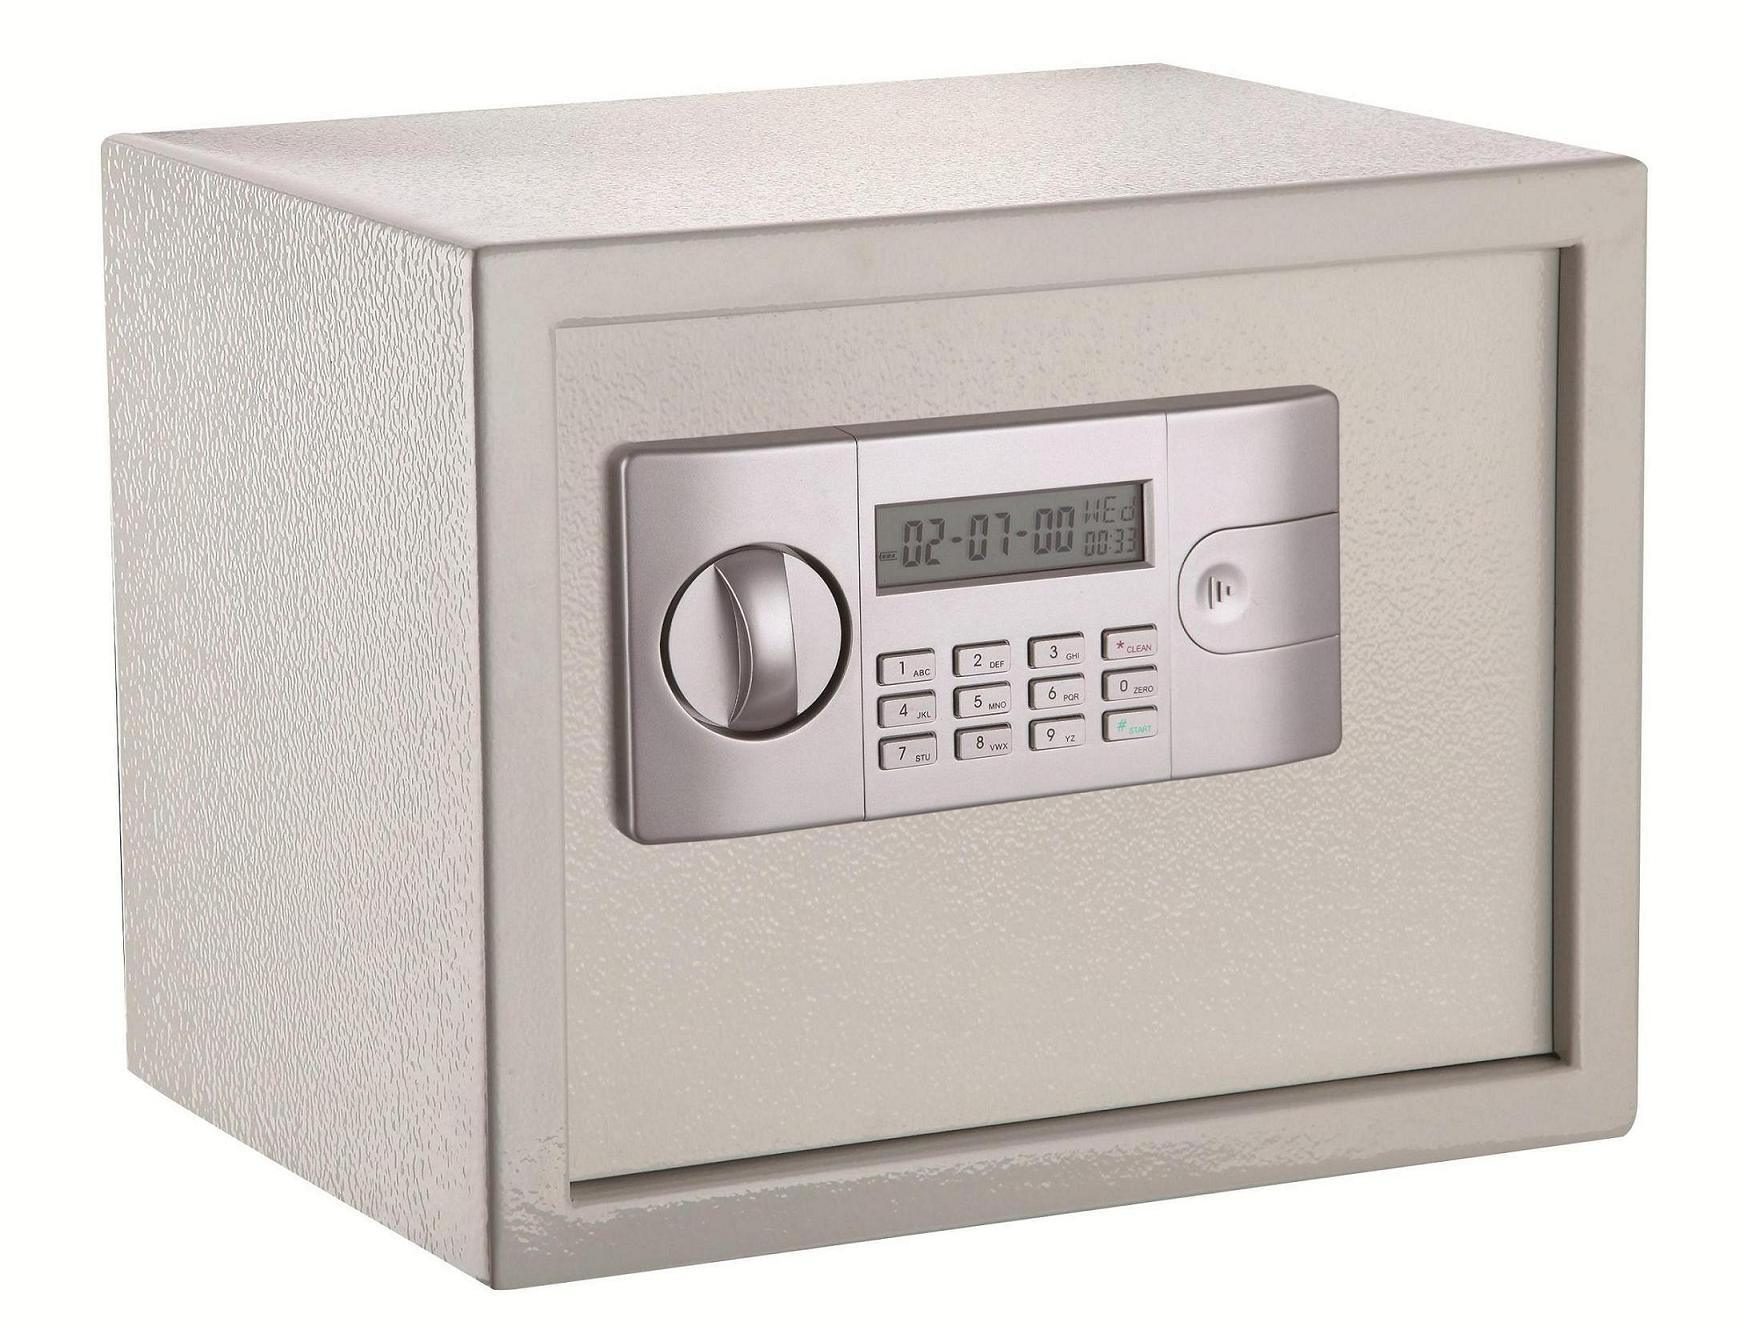 Electronic Safe E30ld for Home and Office Use